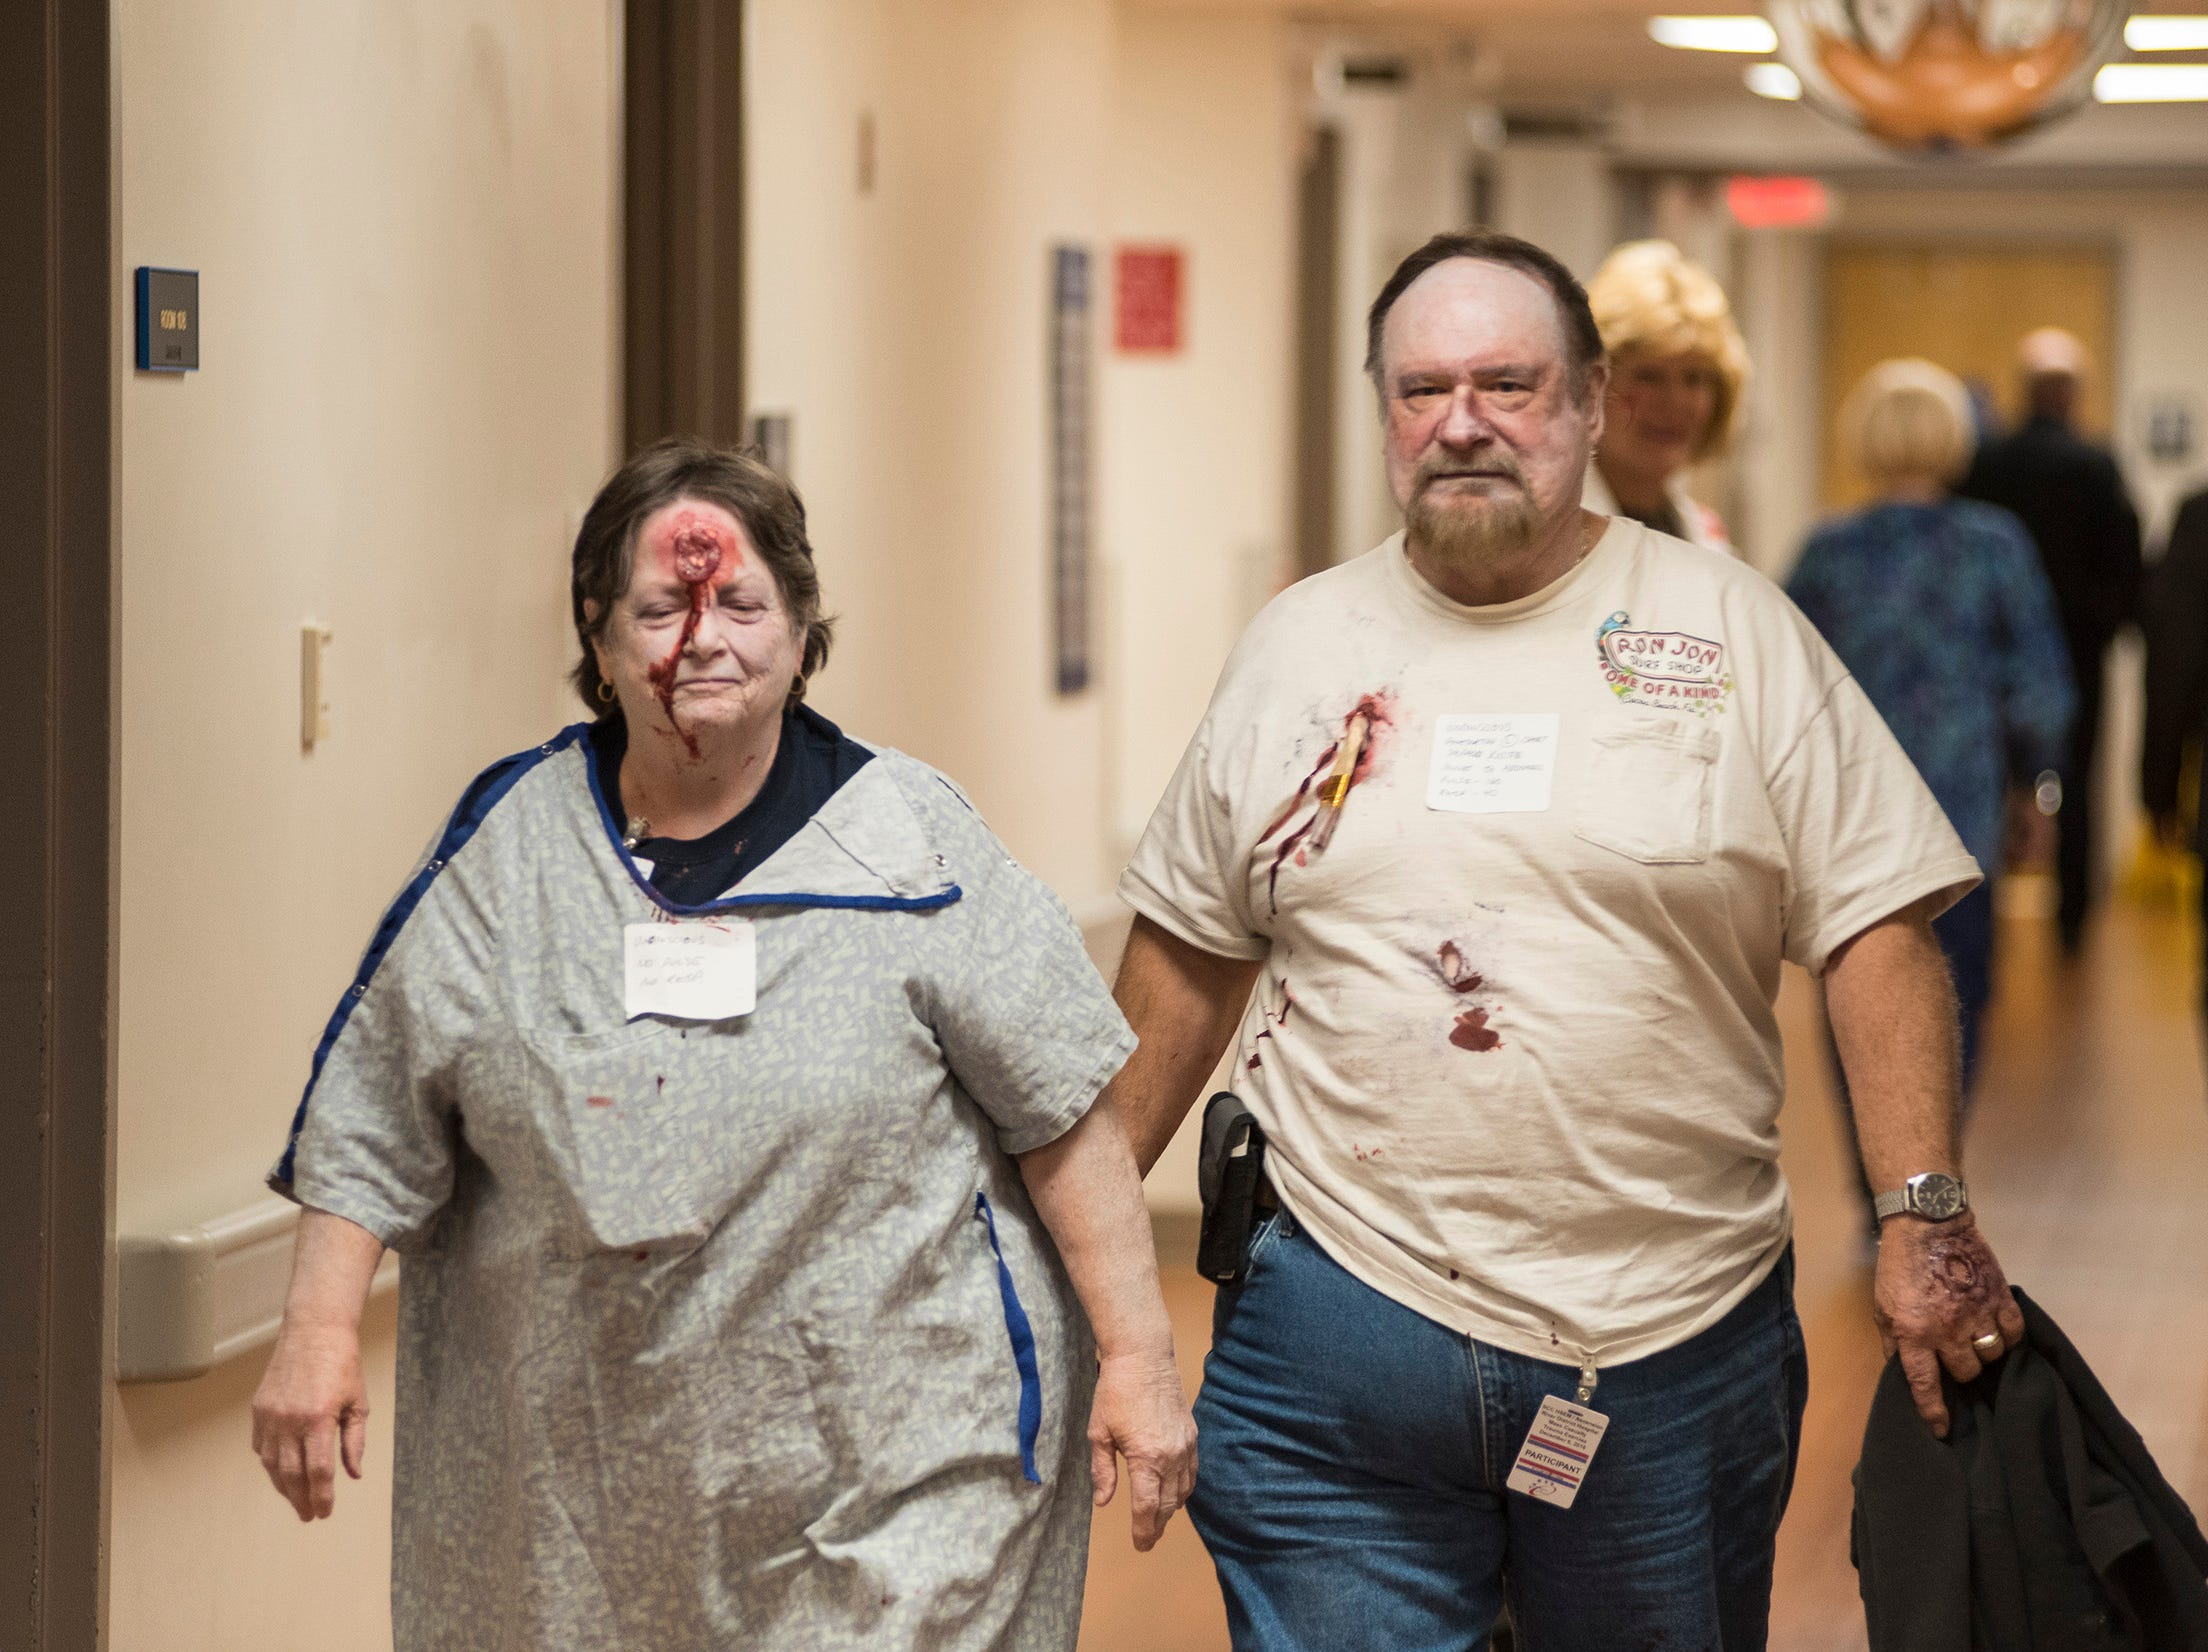 Participants dressed as gunshot victims walk through the hallway of Ascension River District Hospital in East China Thursday, Dec. 6, 2018 after an active shooter drill.